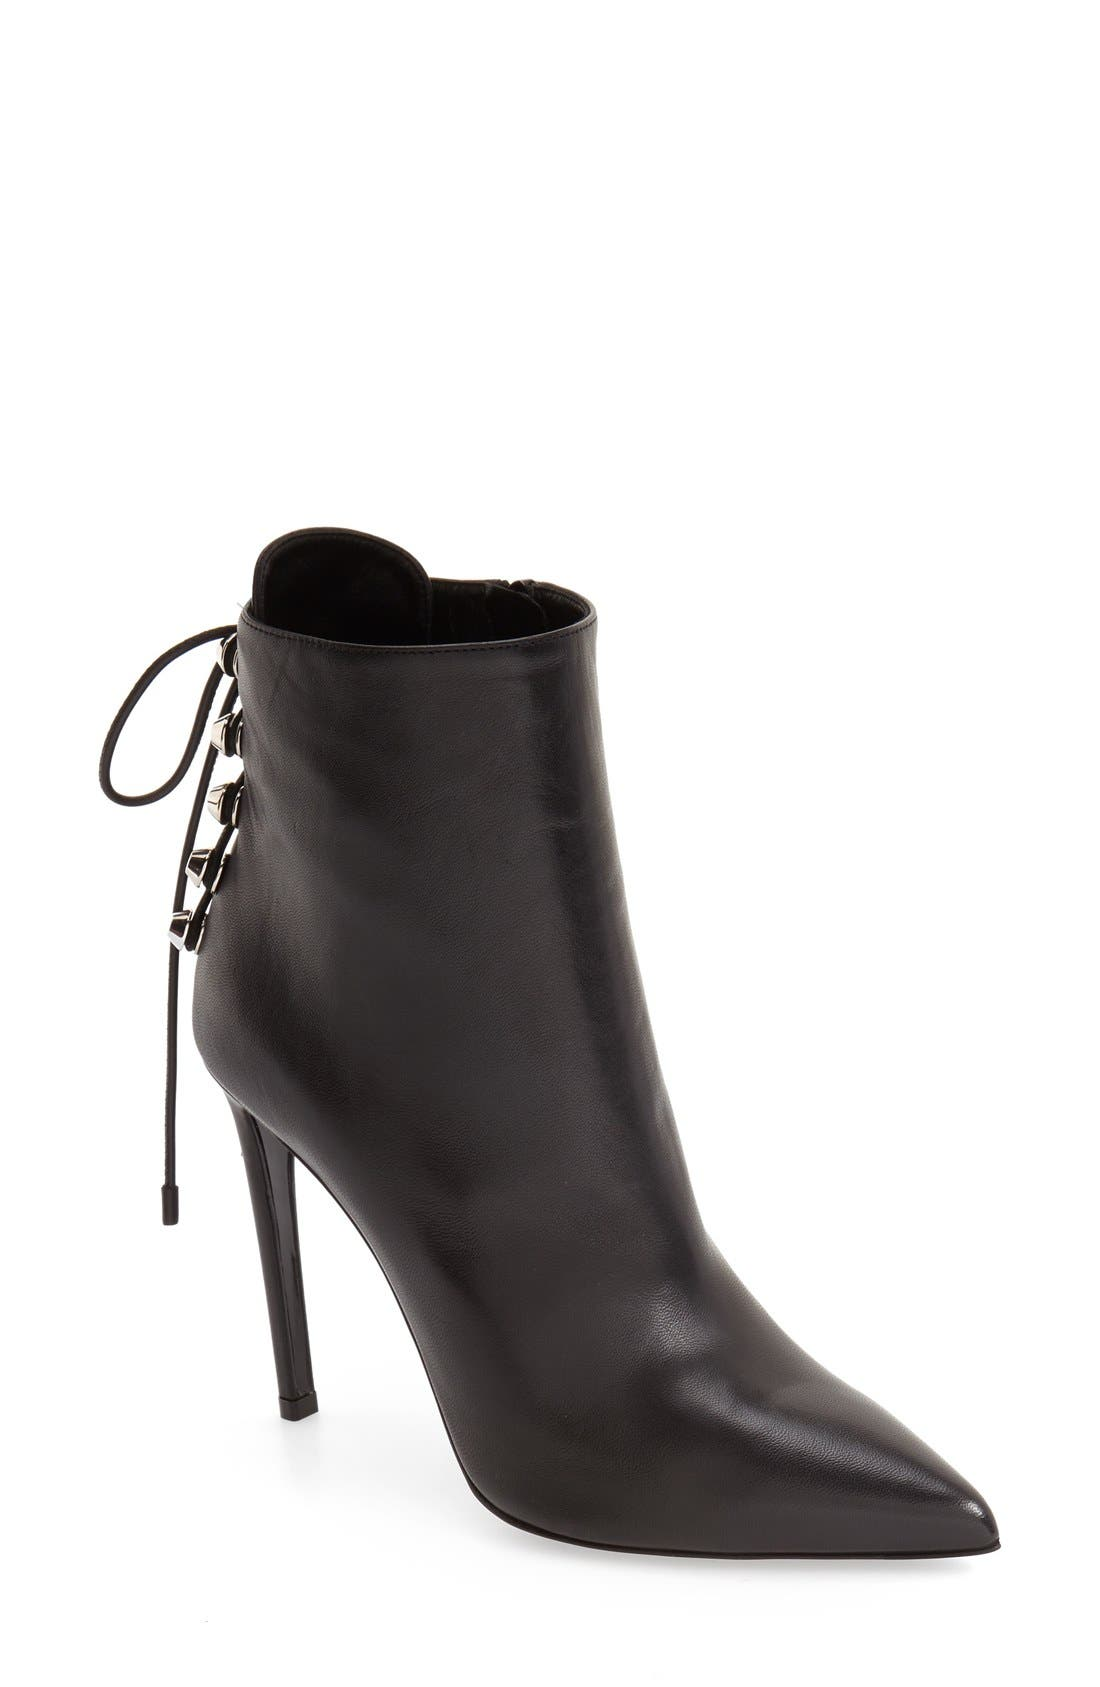 Alternate Image 1 Selected - Balenciaga Lace-Up Back Pointy Toe Bootie (Women)